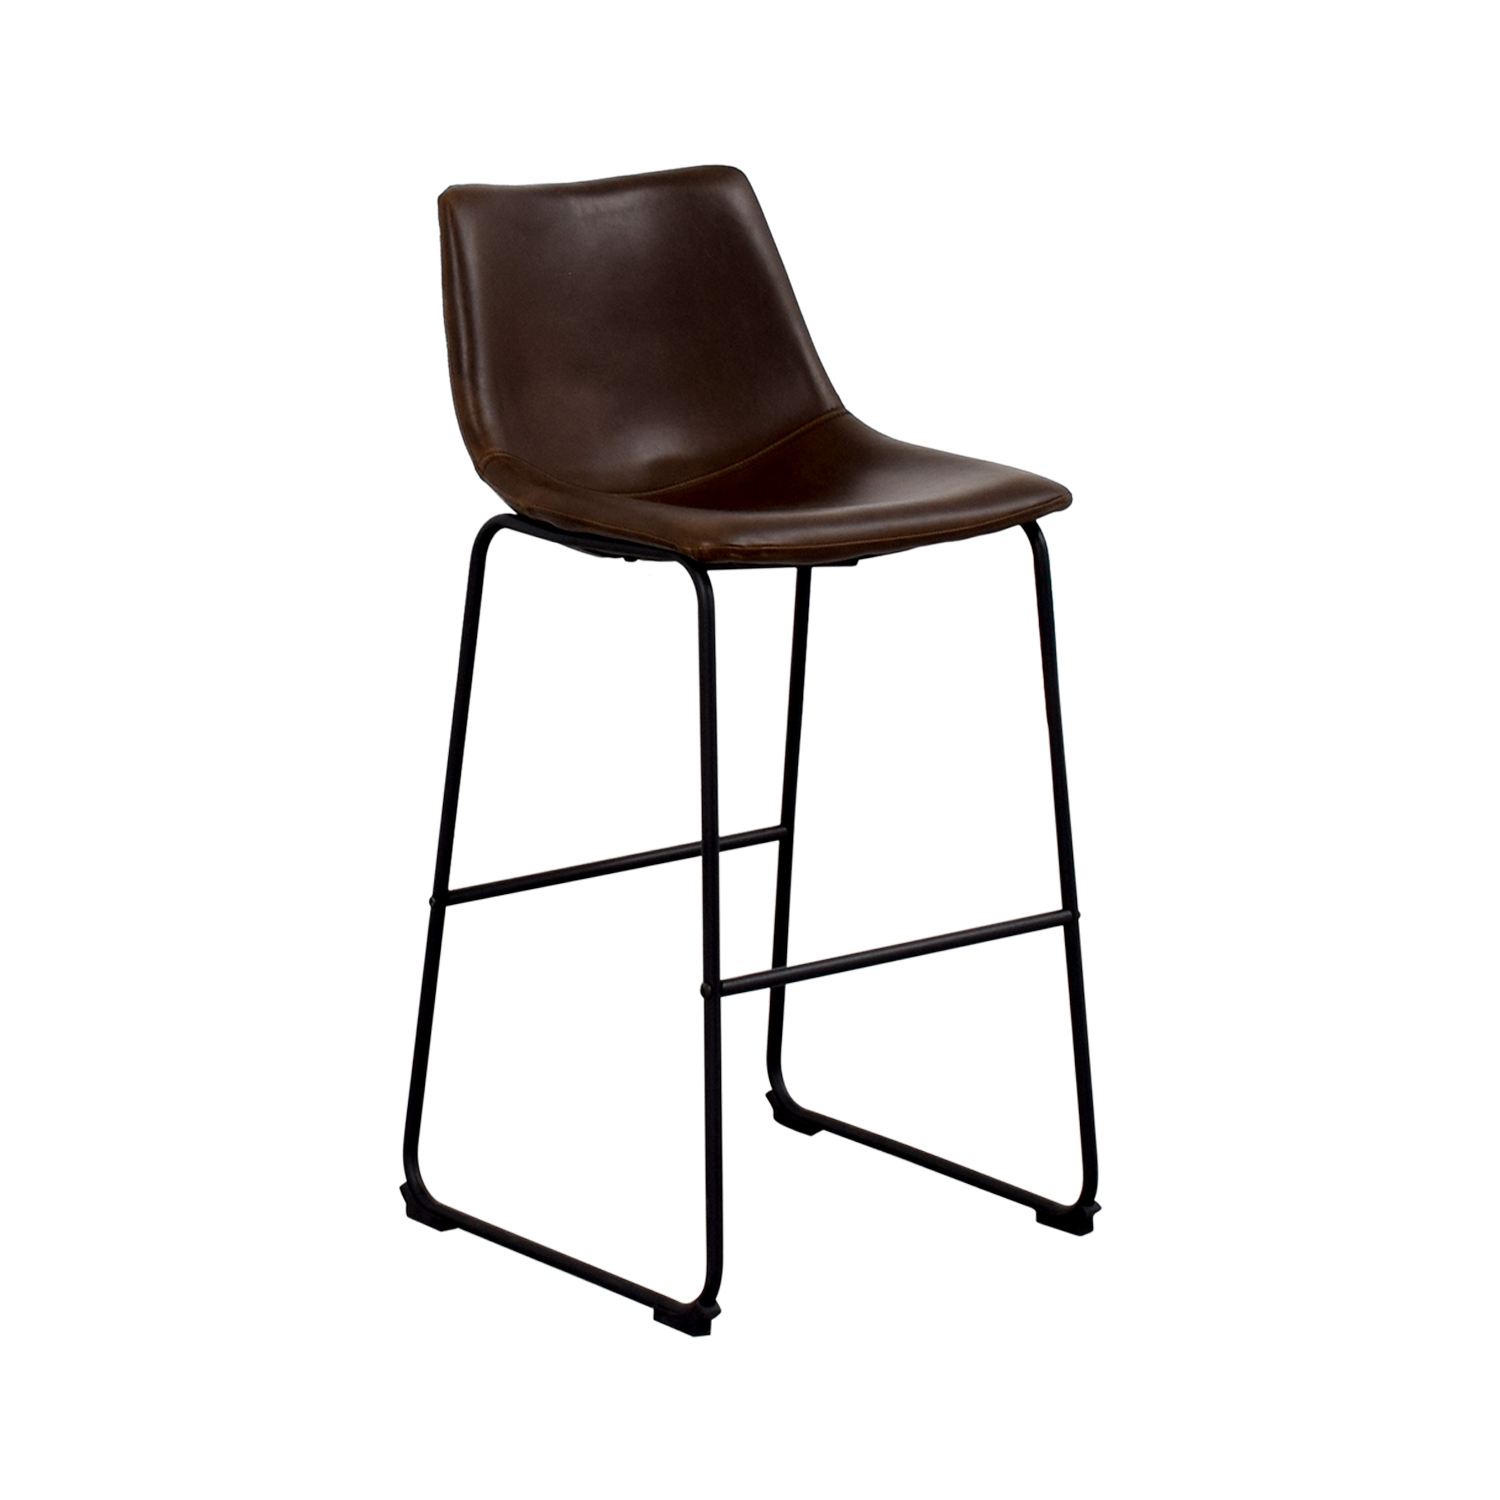 Coaster Coaster Retro Brown Leatherette Counter Height Chair for sale